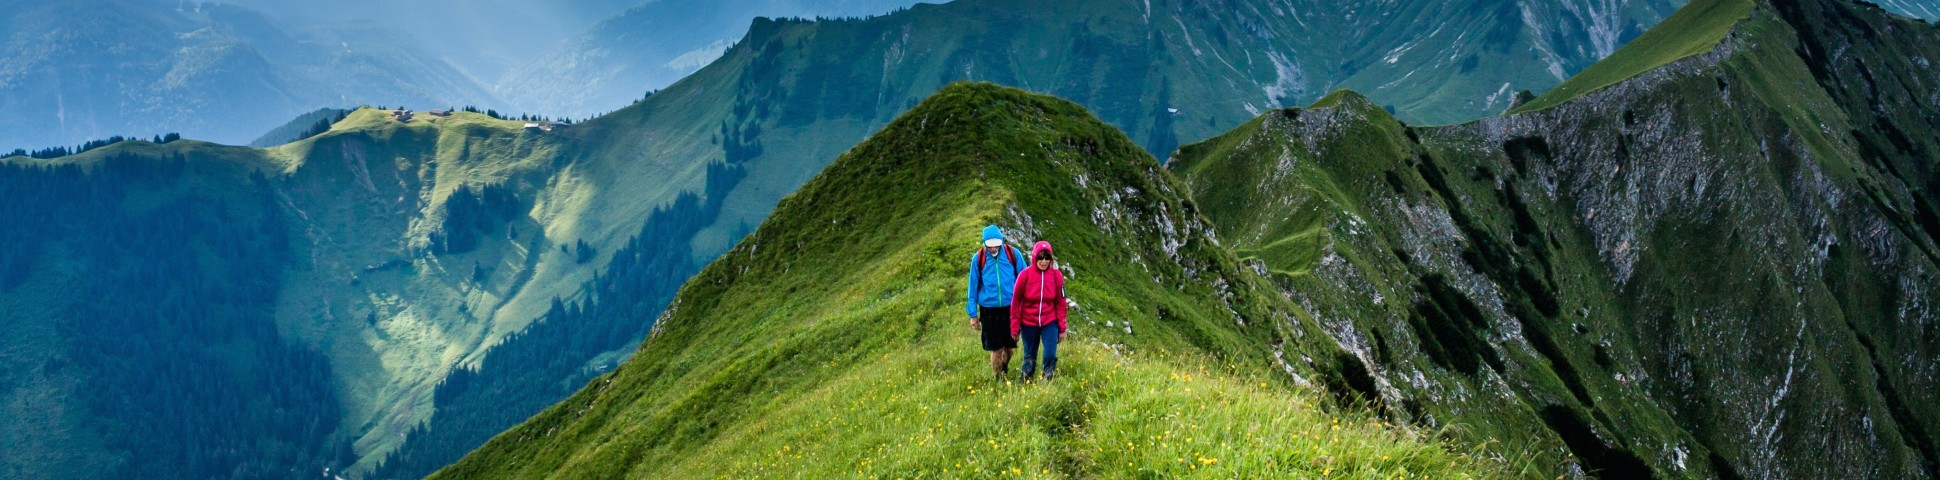 Two hikers walking on a ridge among the green mountains